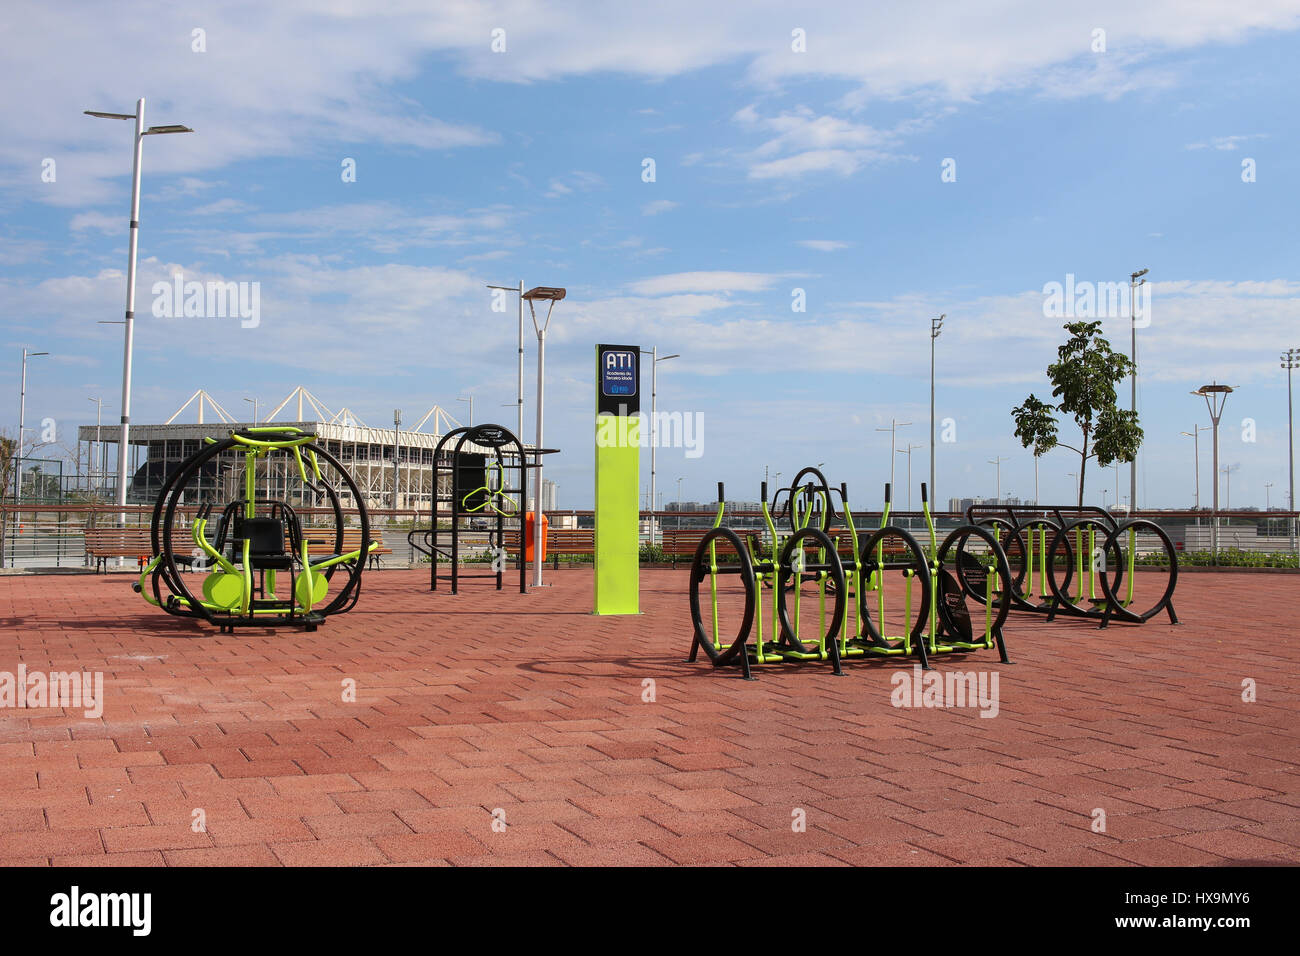 Outdoor Gym Was Set Up For Free Use Of Population As Olympic Legacy Built To